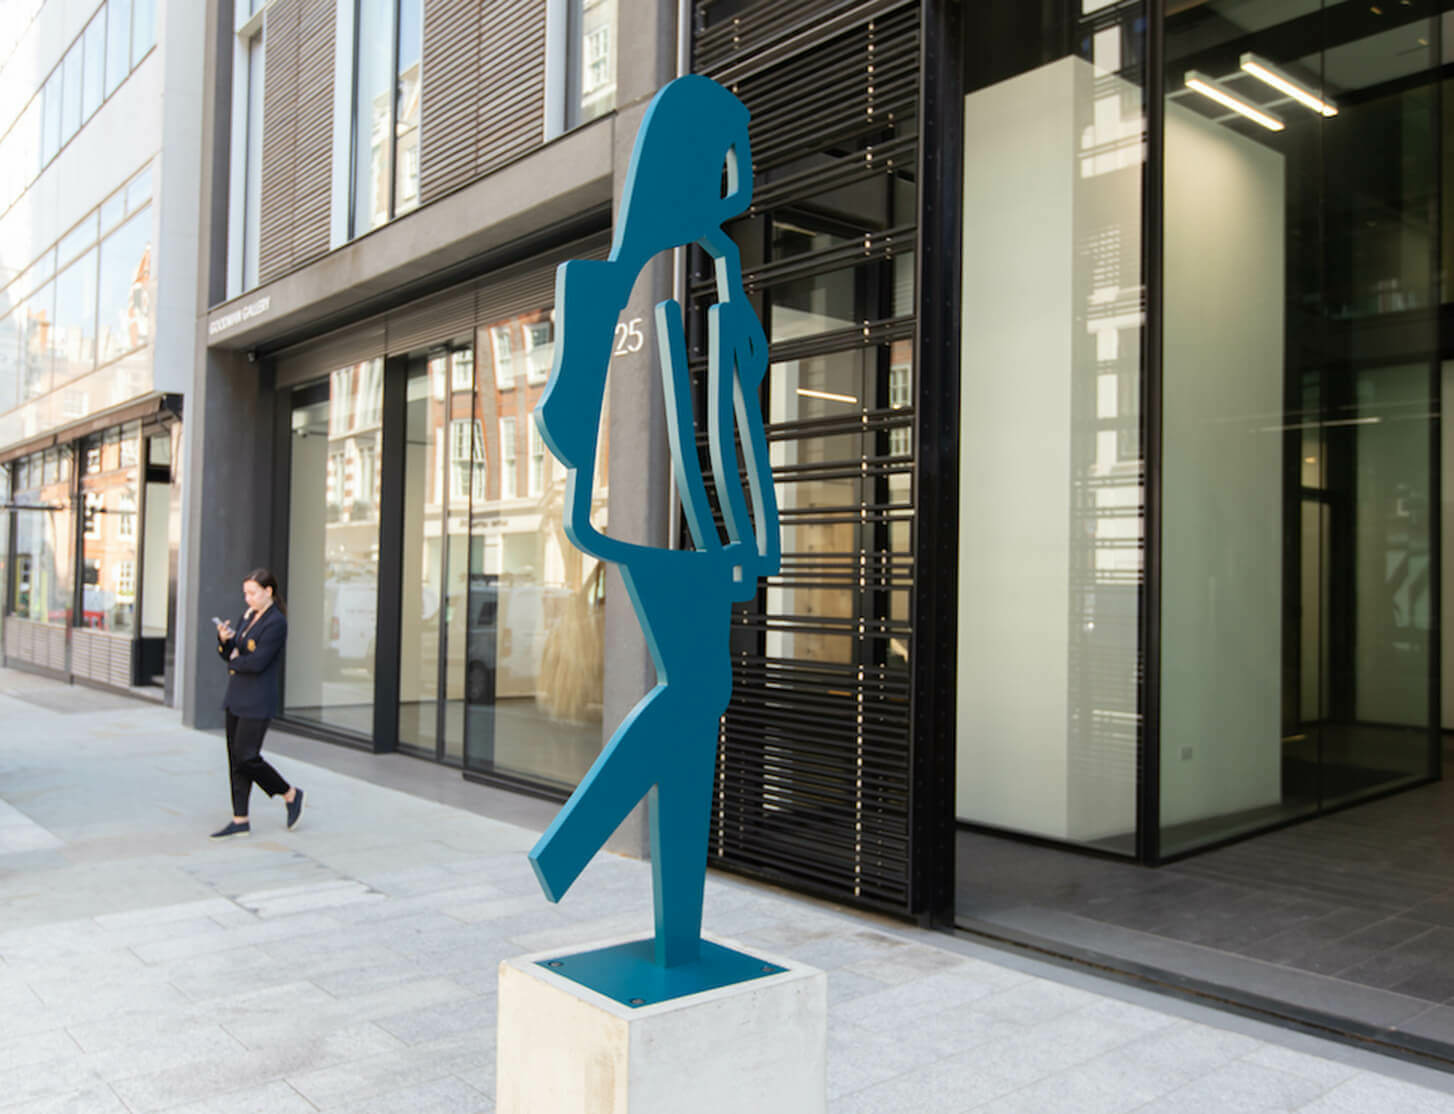 Lisson Gallery to participate in 2021 Mayfair Art Weekend